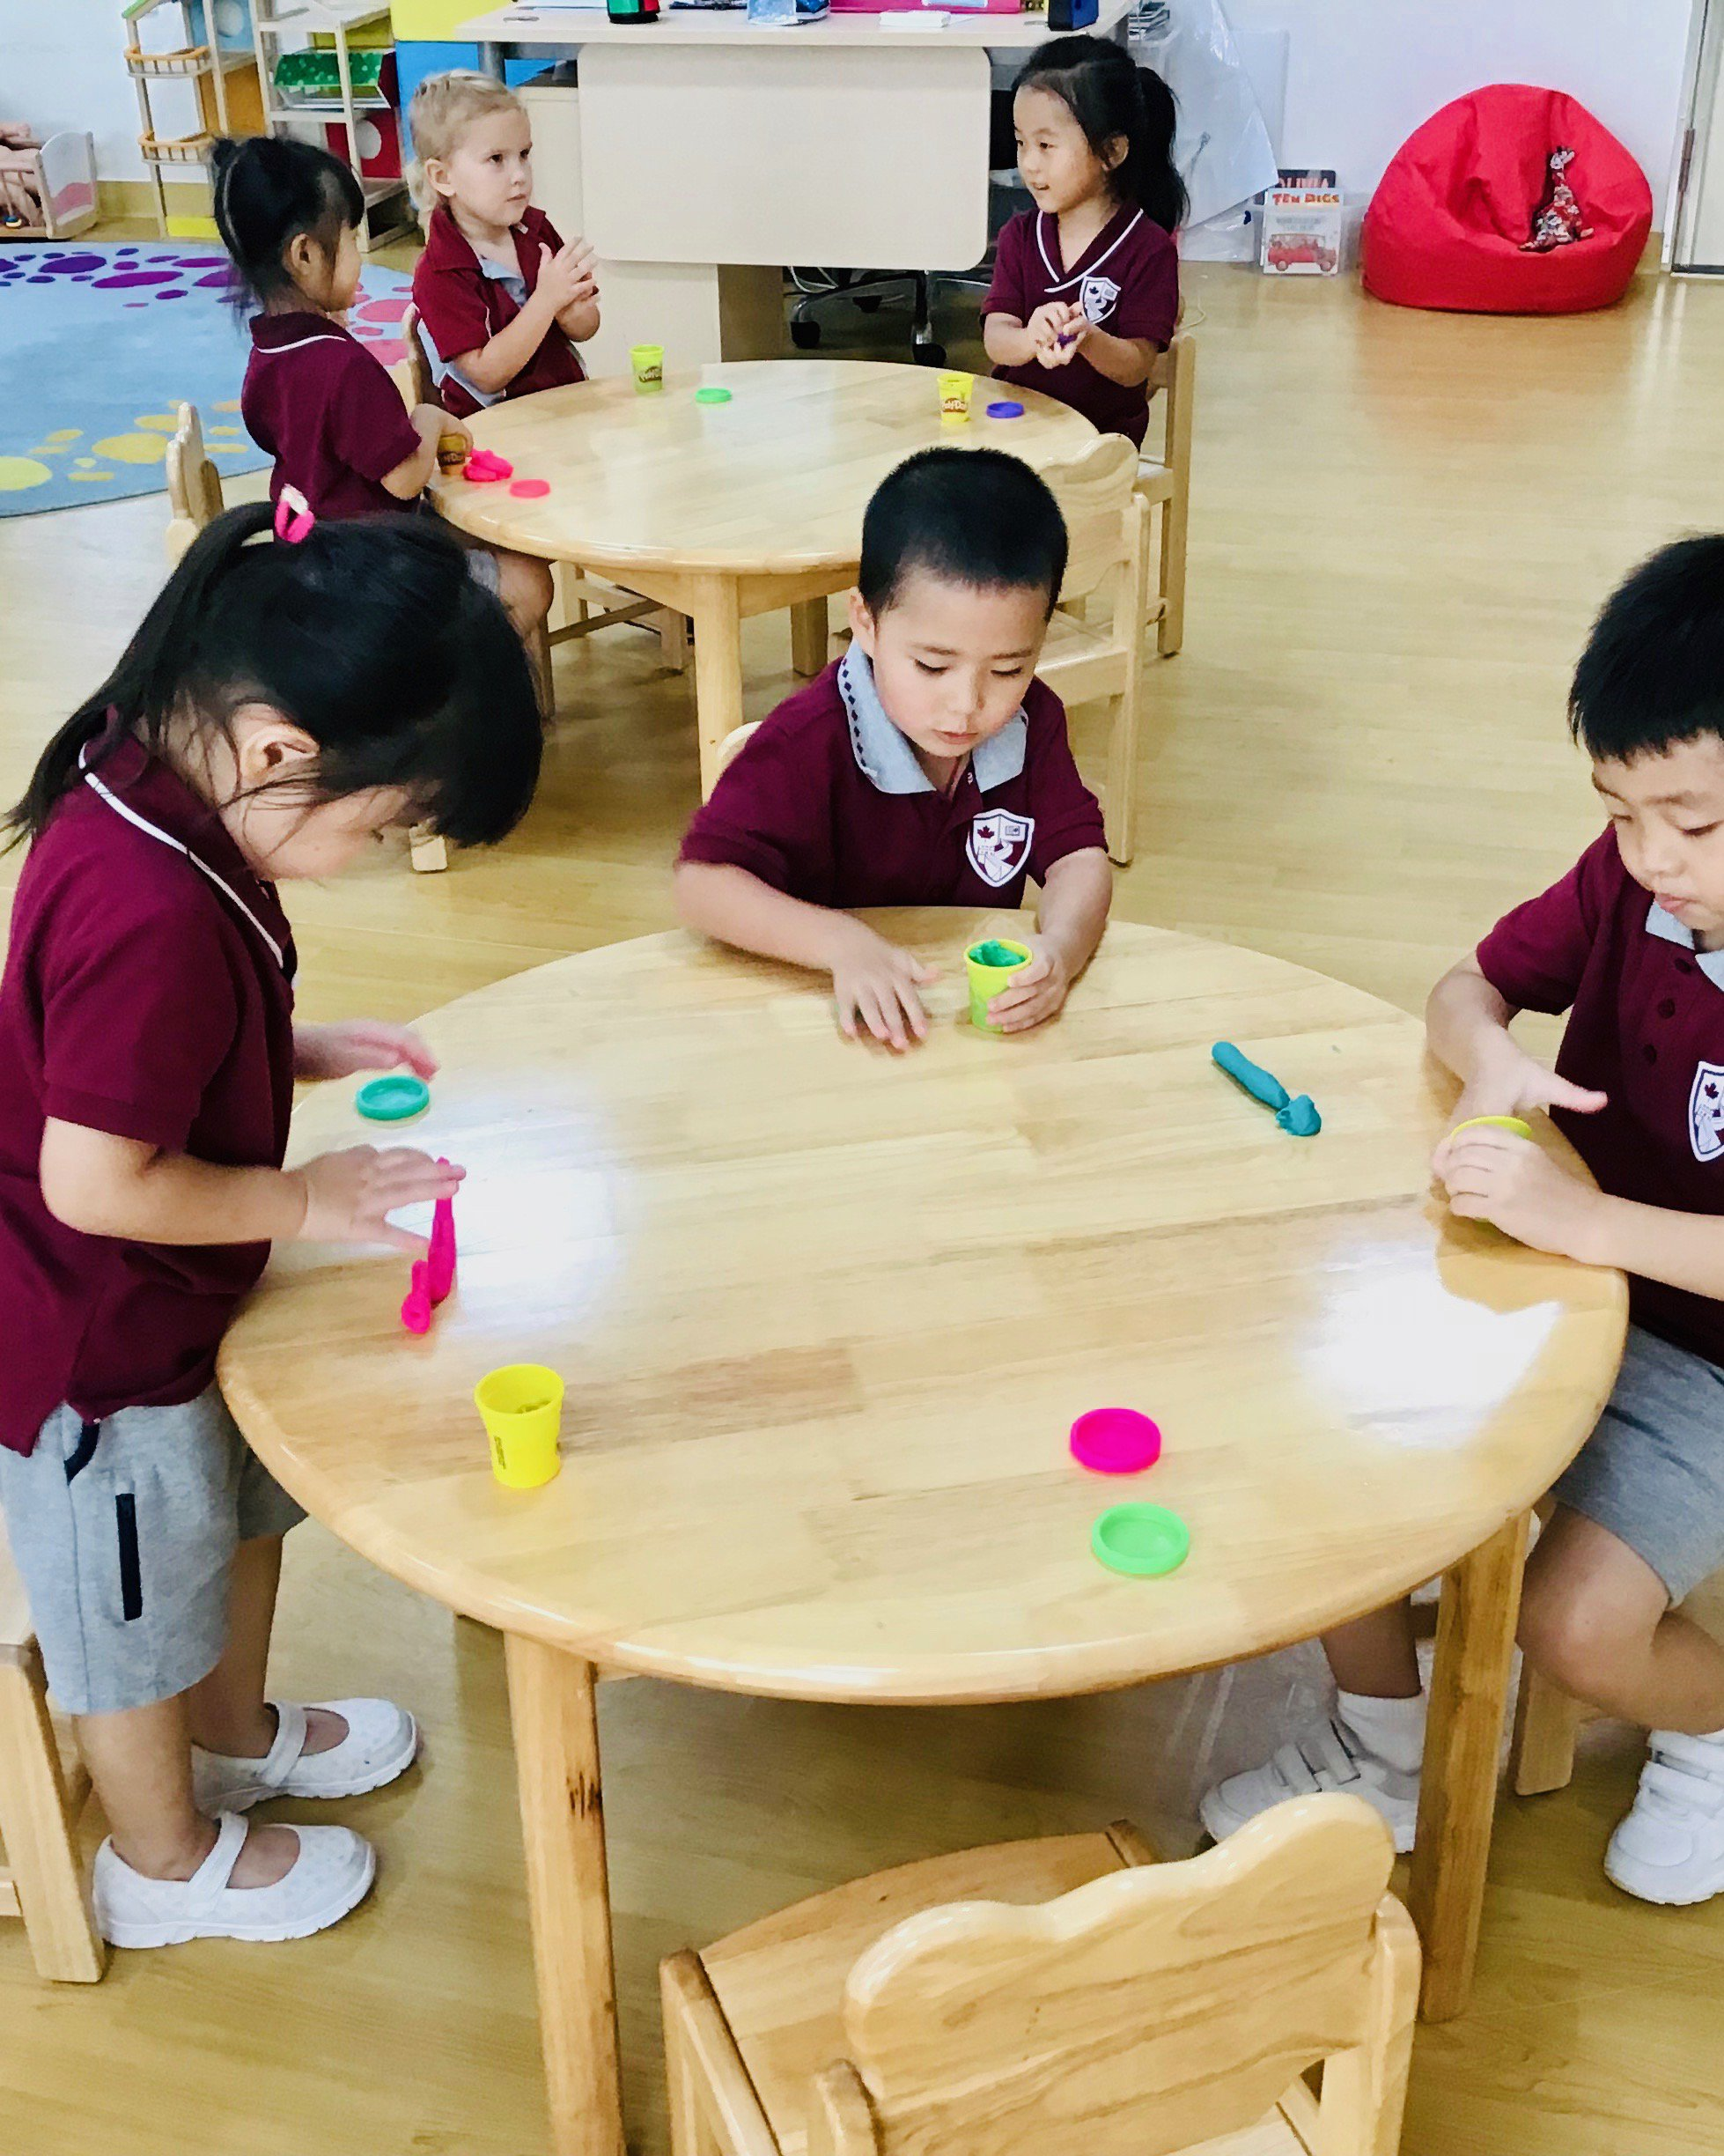 PLAY BASED LEARNING IN THE EARLY YEARS